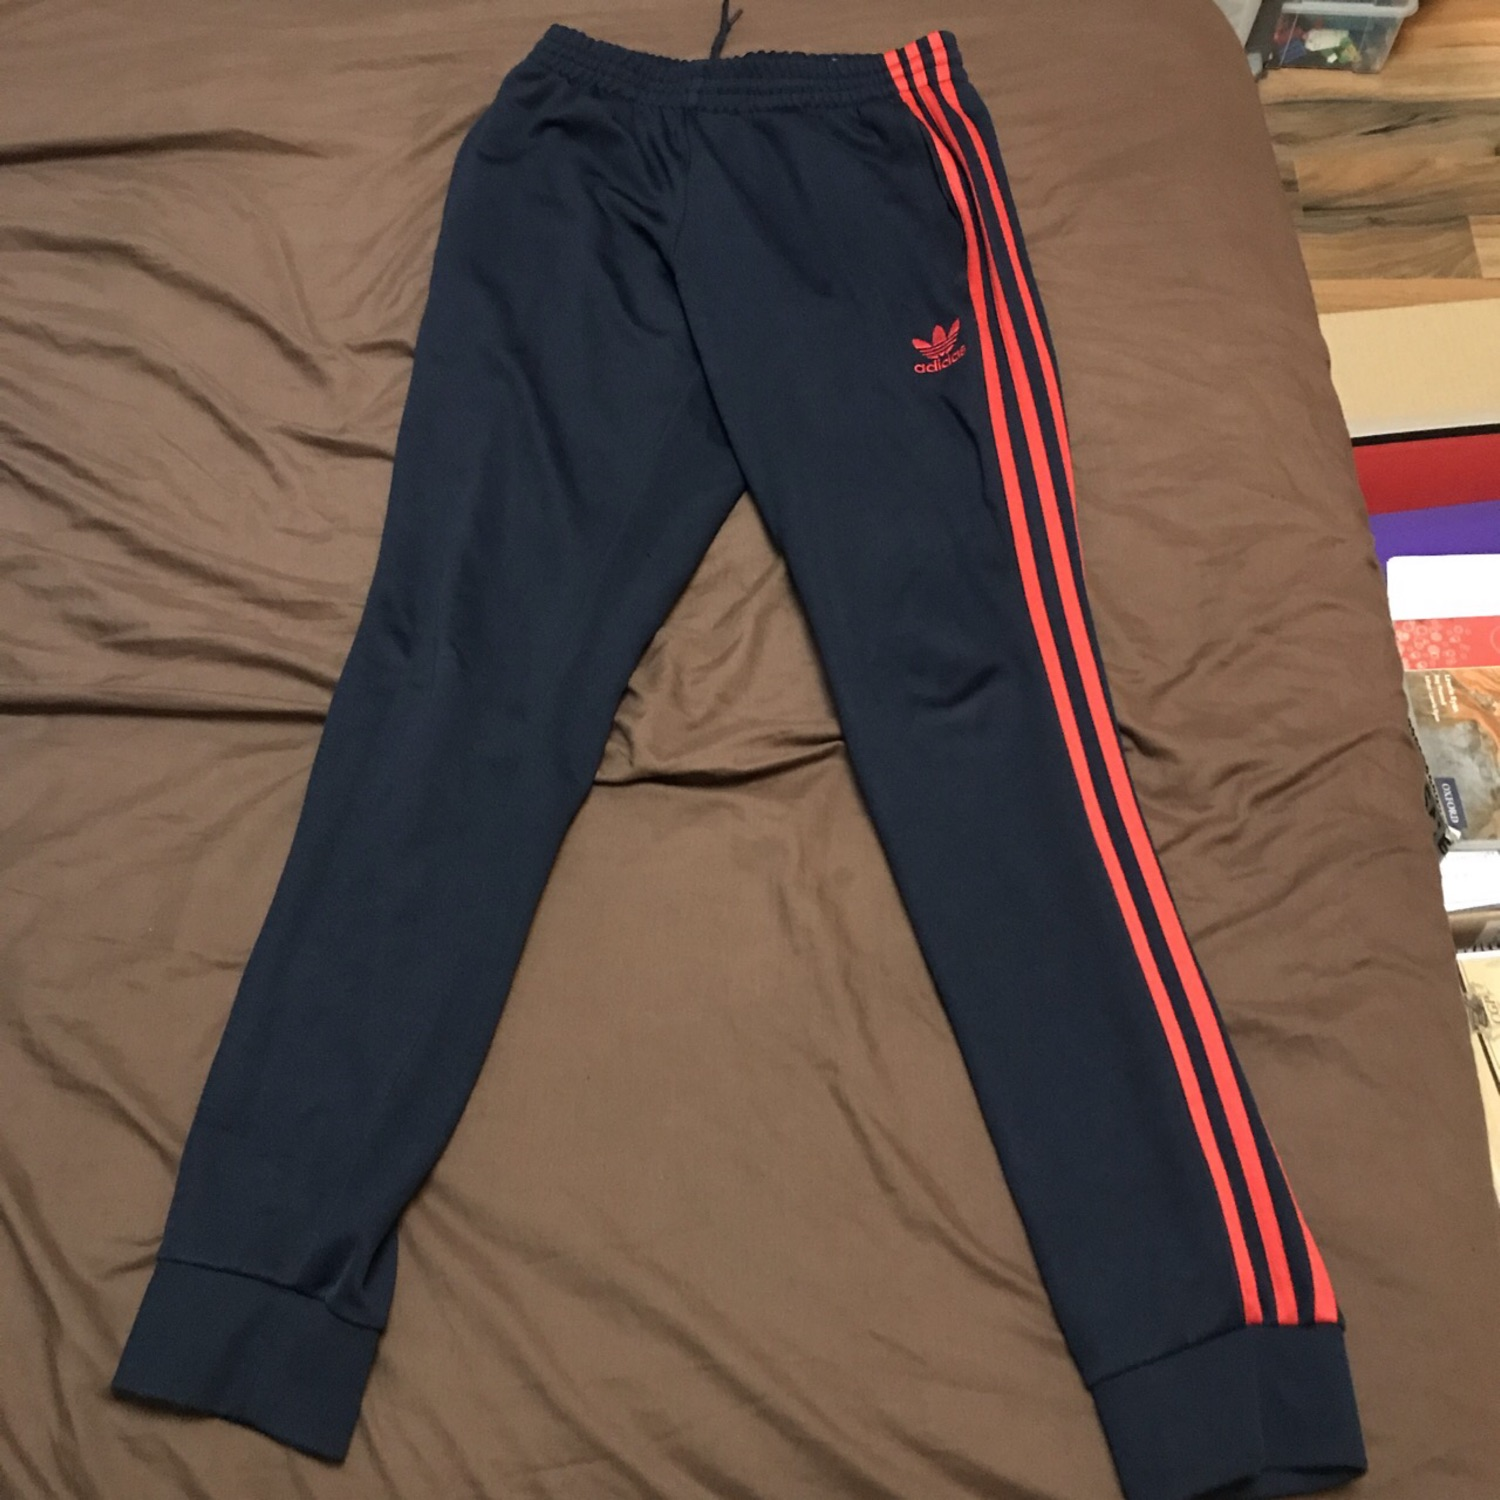 c6d26d4aecc Adidas Originals Sst Navy And Red Track Pant